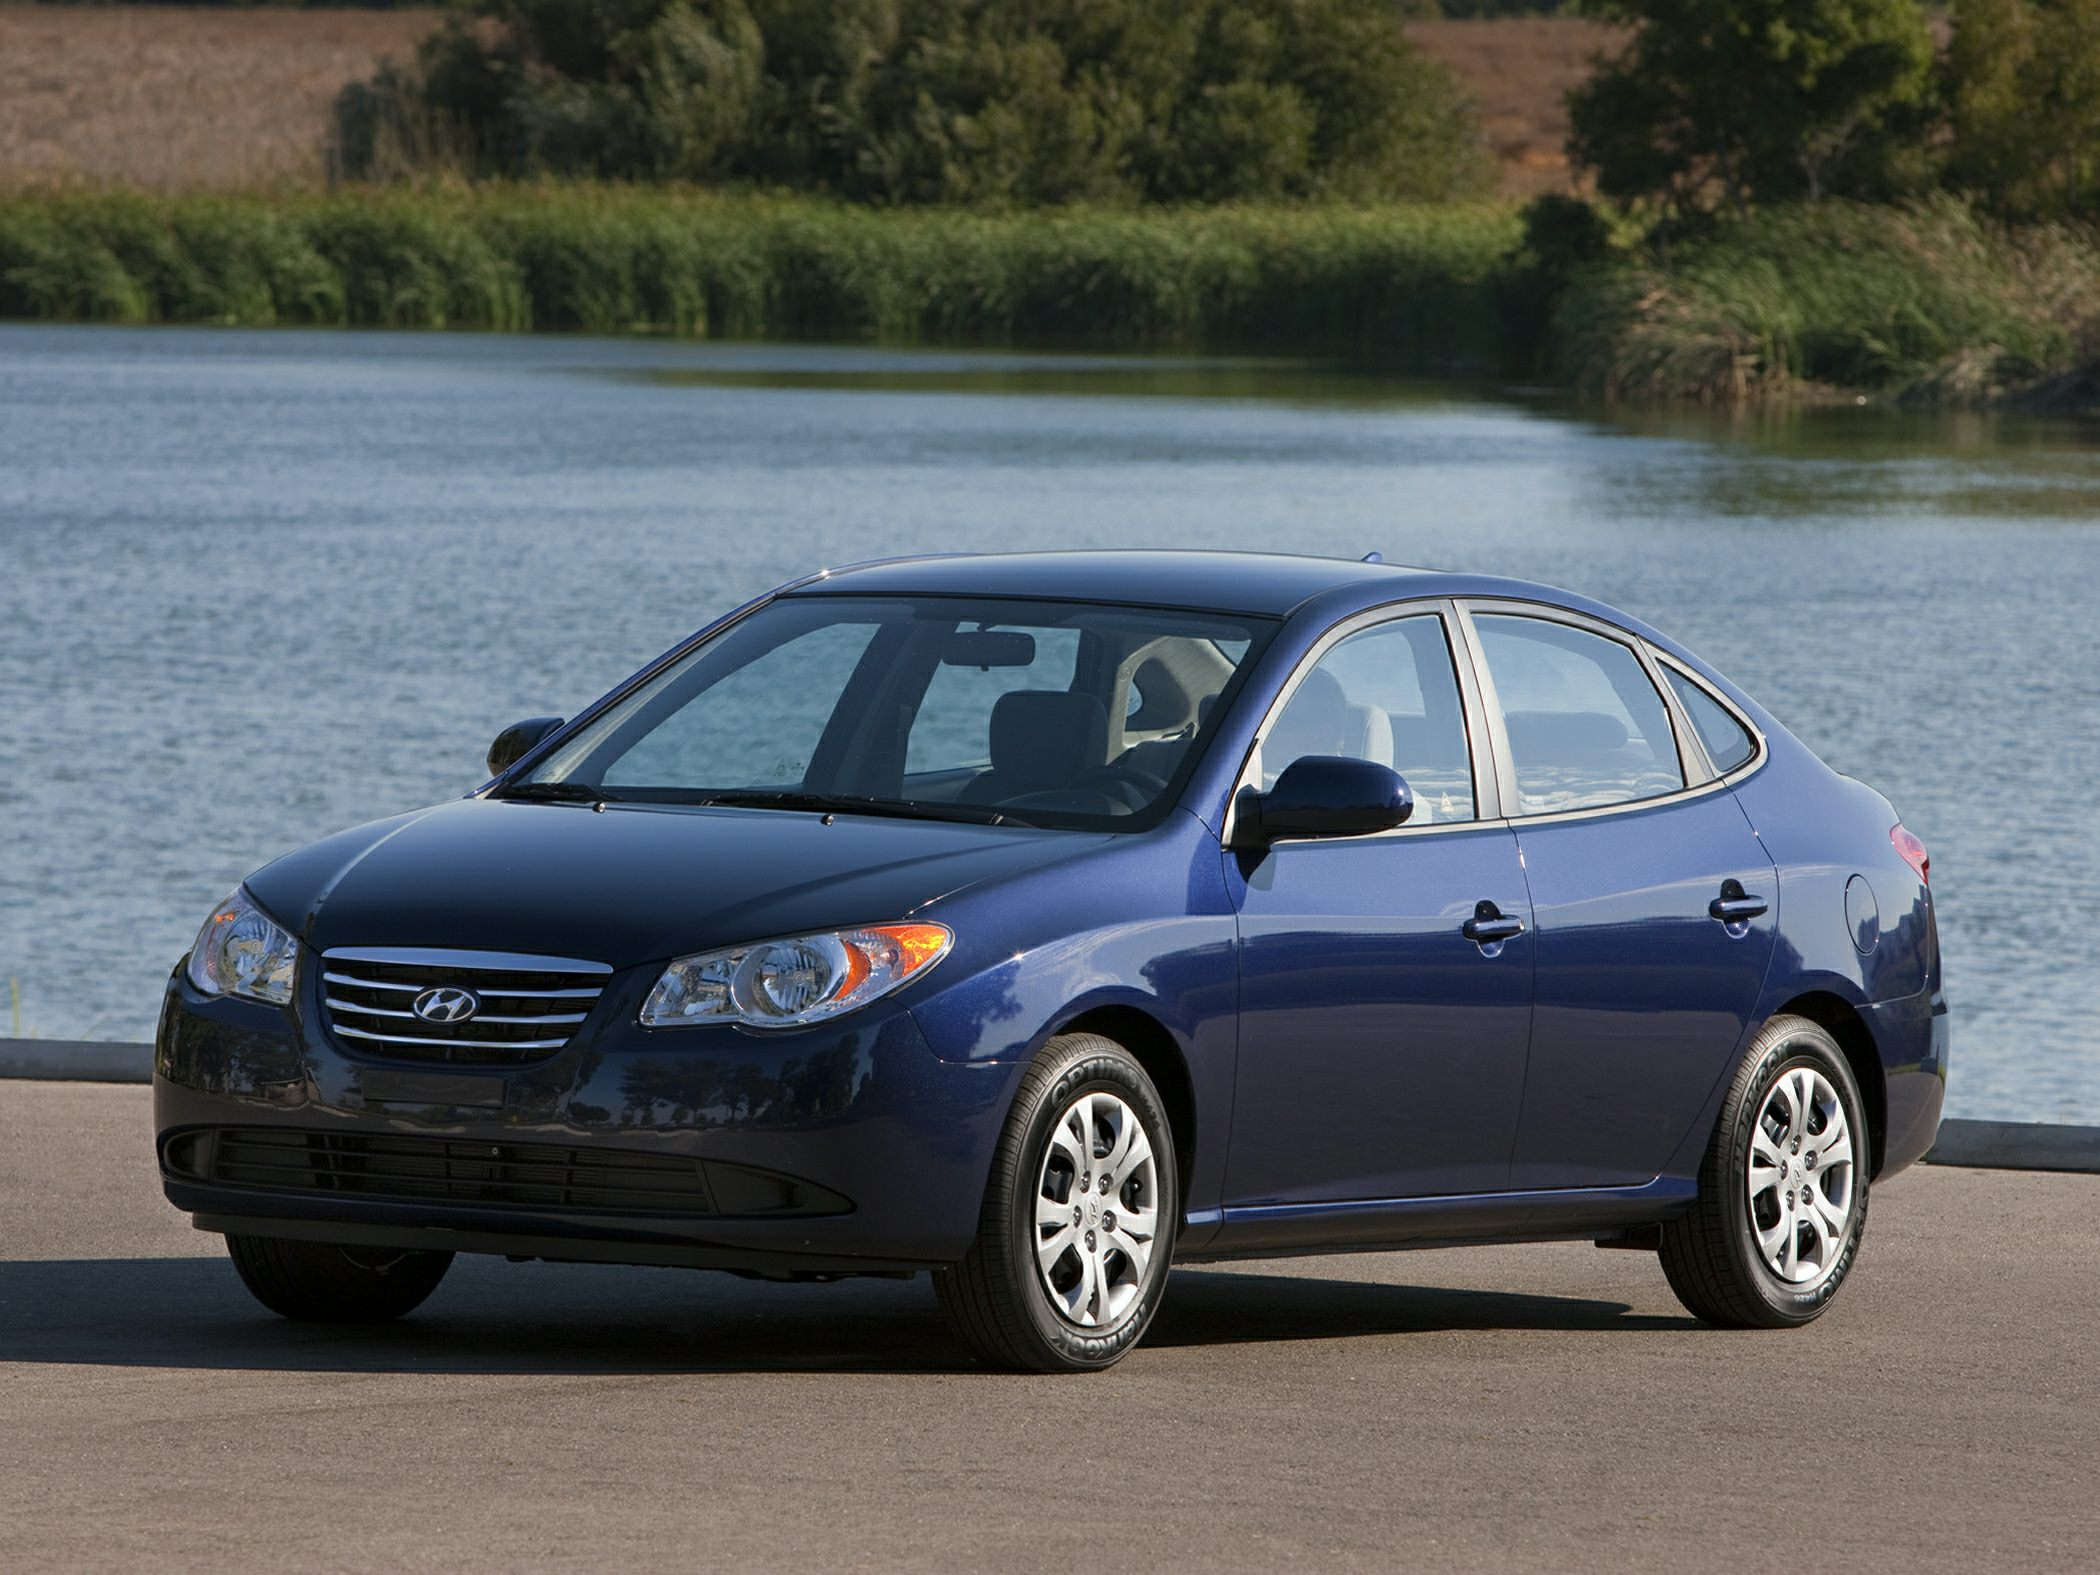 2010 Hyundai Elantra GLS Great MPG Economy smart New Arrival Dont pay too much for the charming